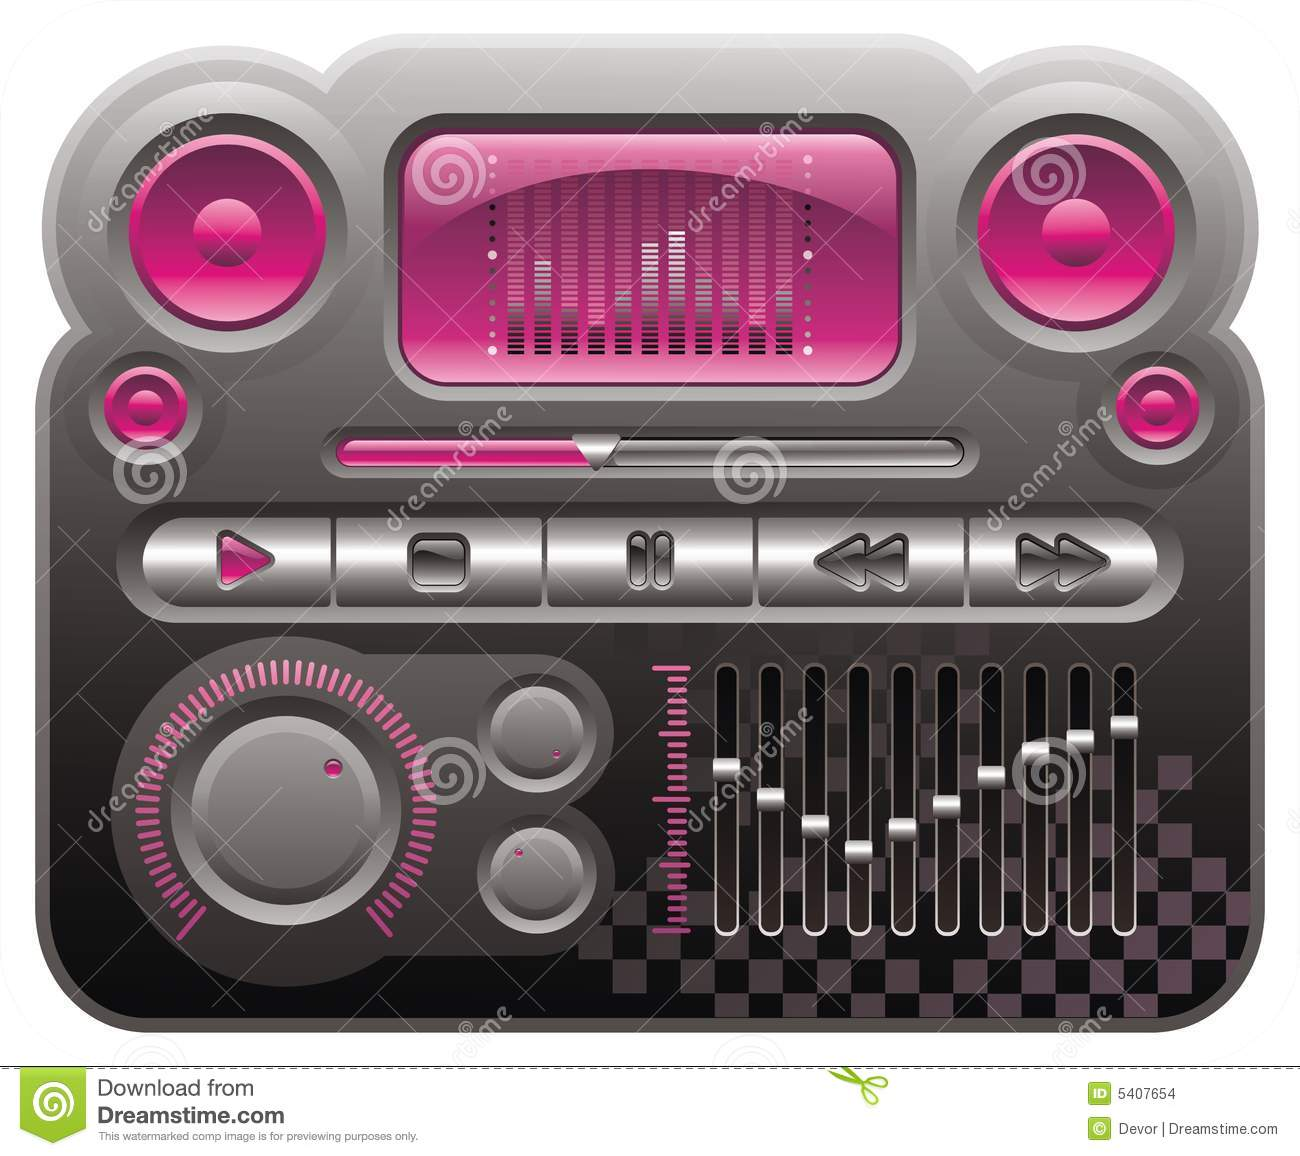 Mp3 player skin free psd free psd in photoshop psd (. Psd ) file.